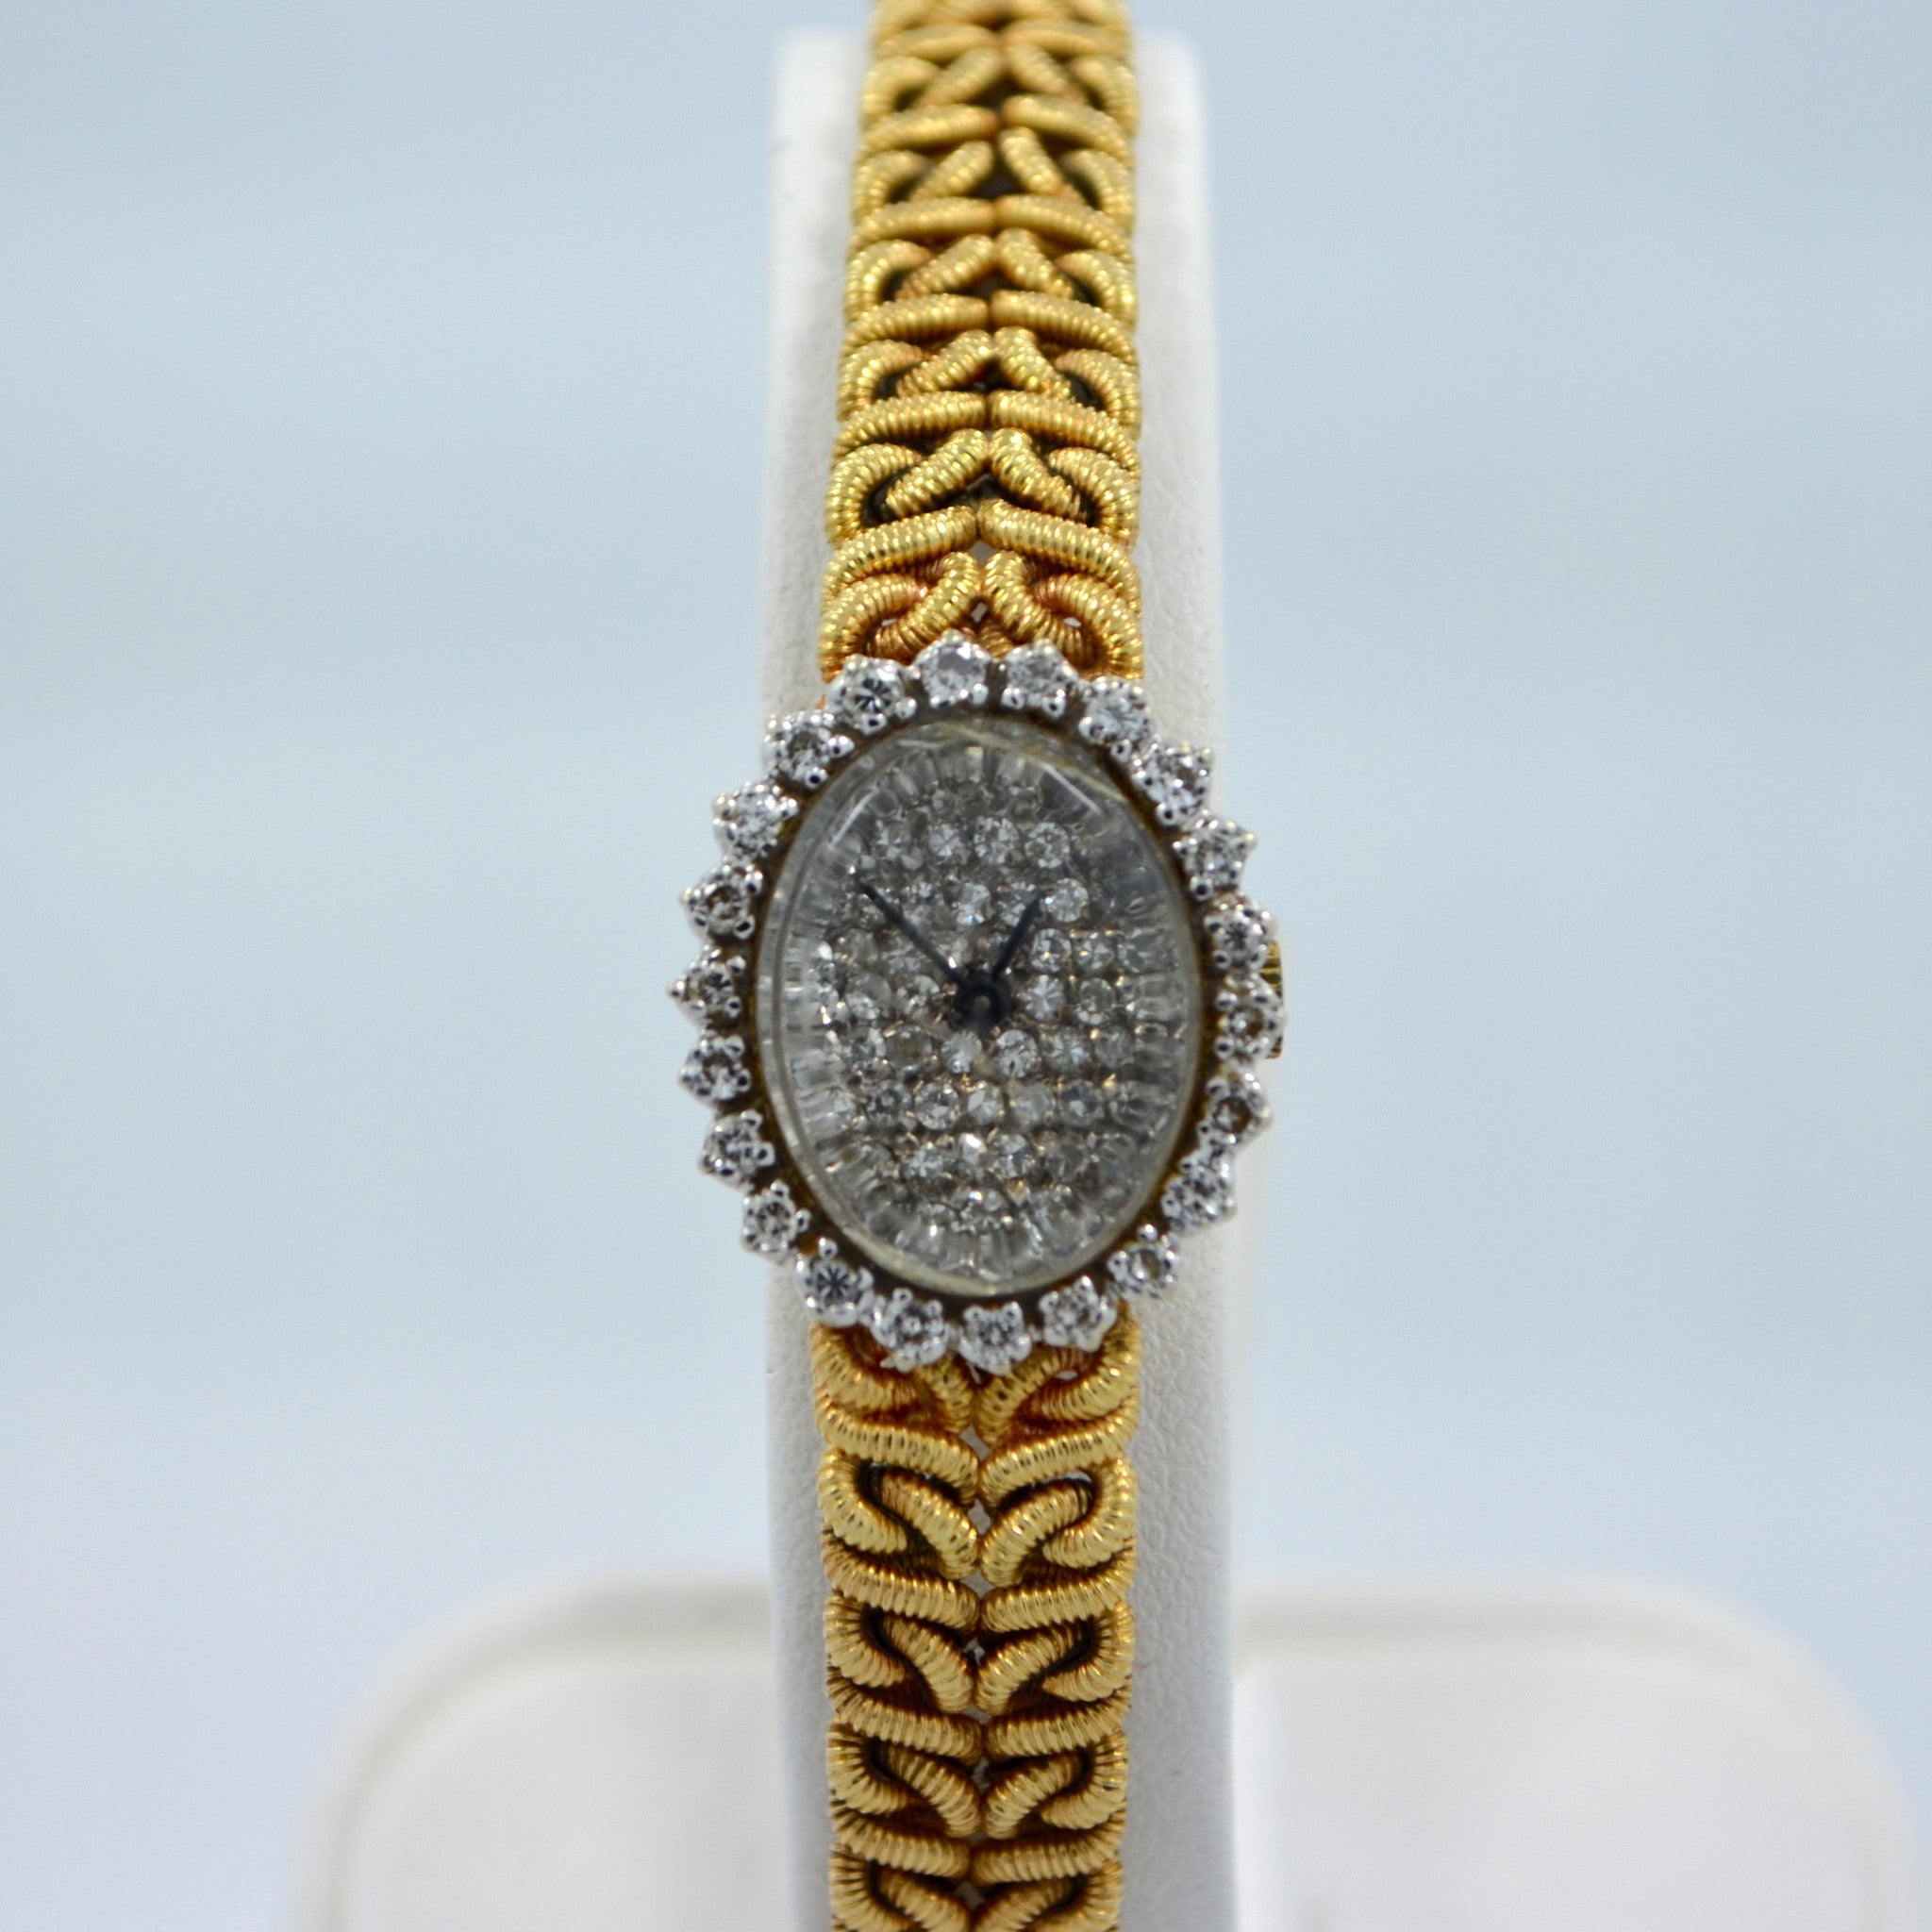 Jules Jurgensen 14K Yellow Gold Solid Ladies Quartz Diamond Wristwatch - Hashtag Watch Company